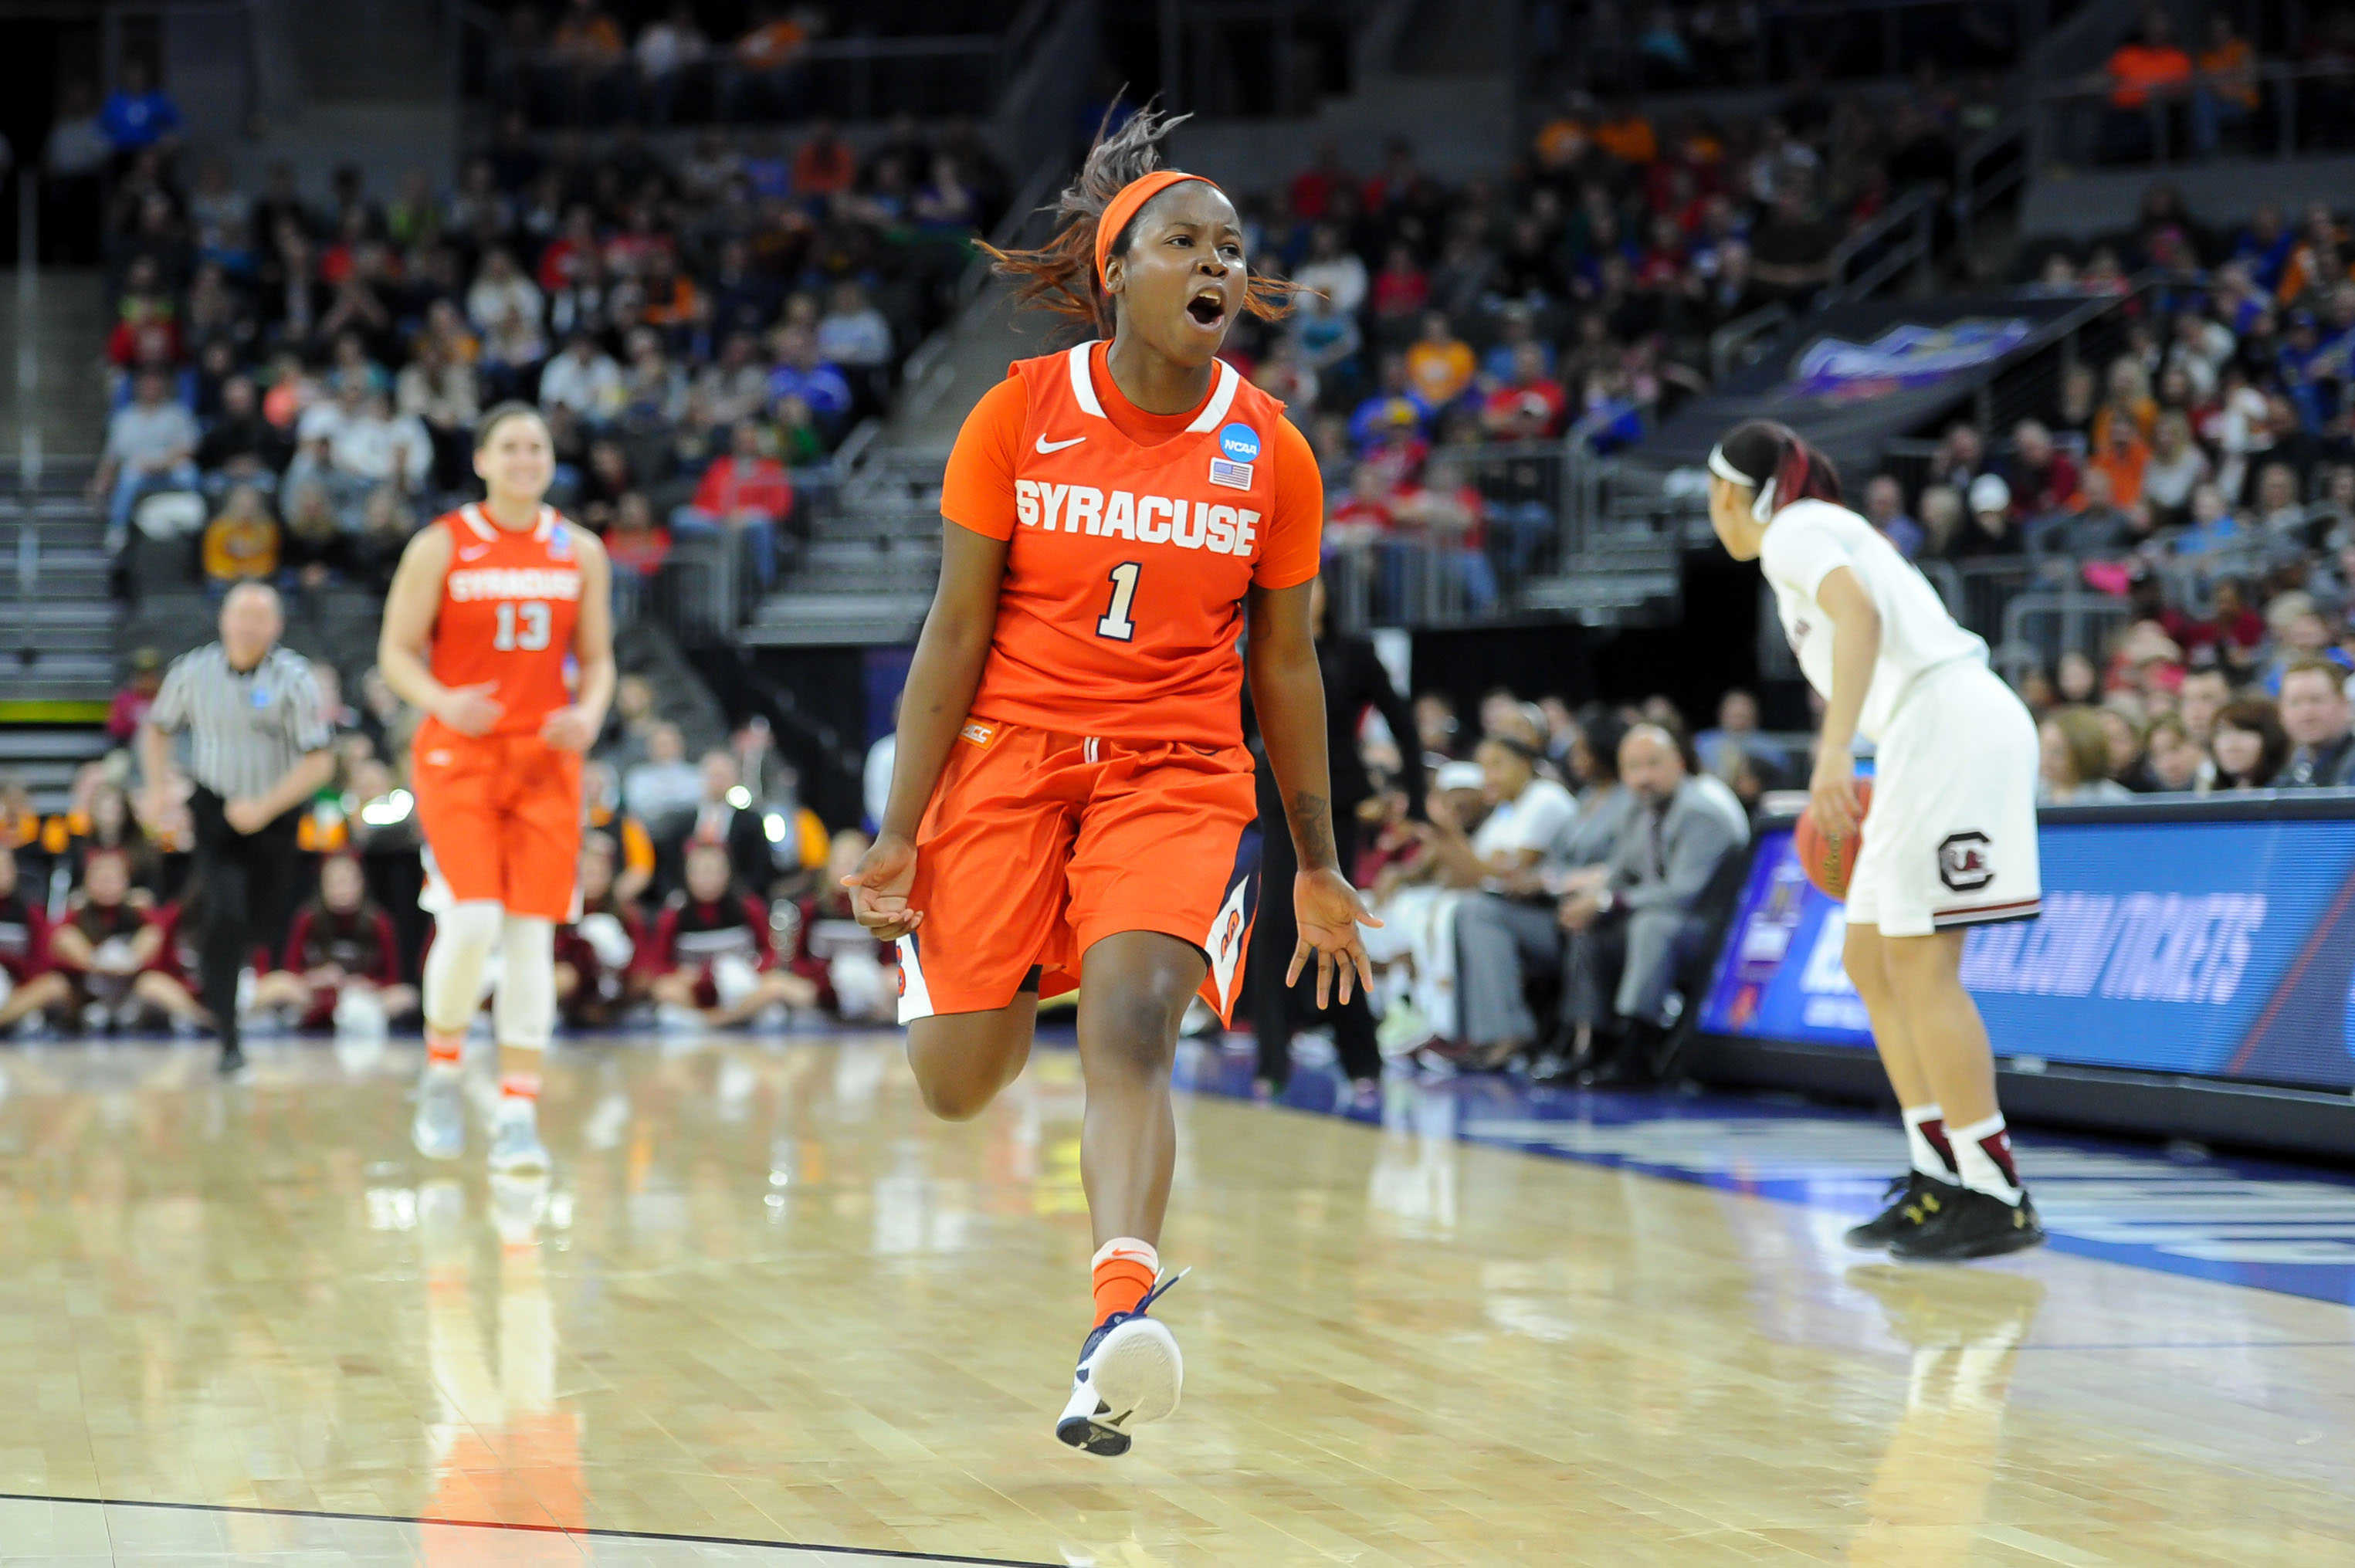 Syracuse runs into UConn again in NCAA Tournament